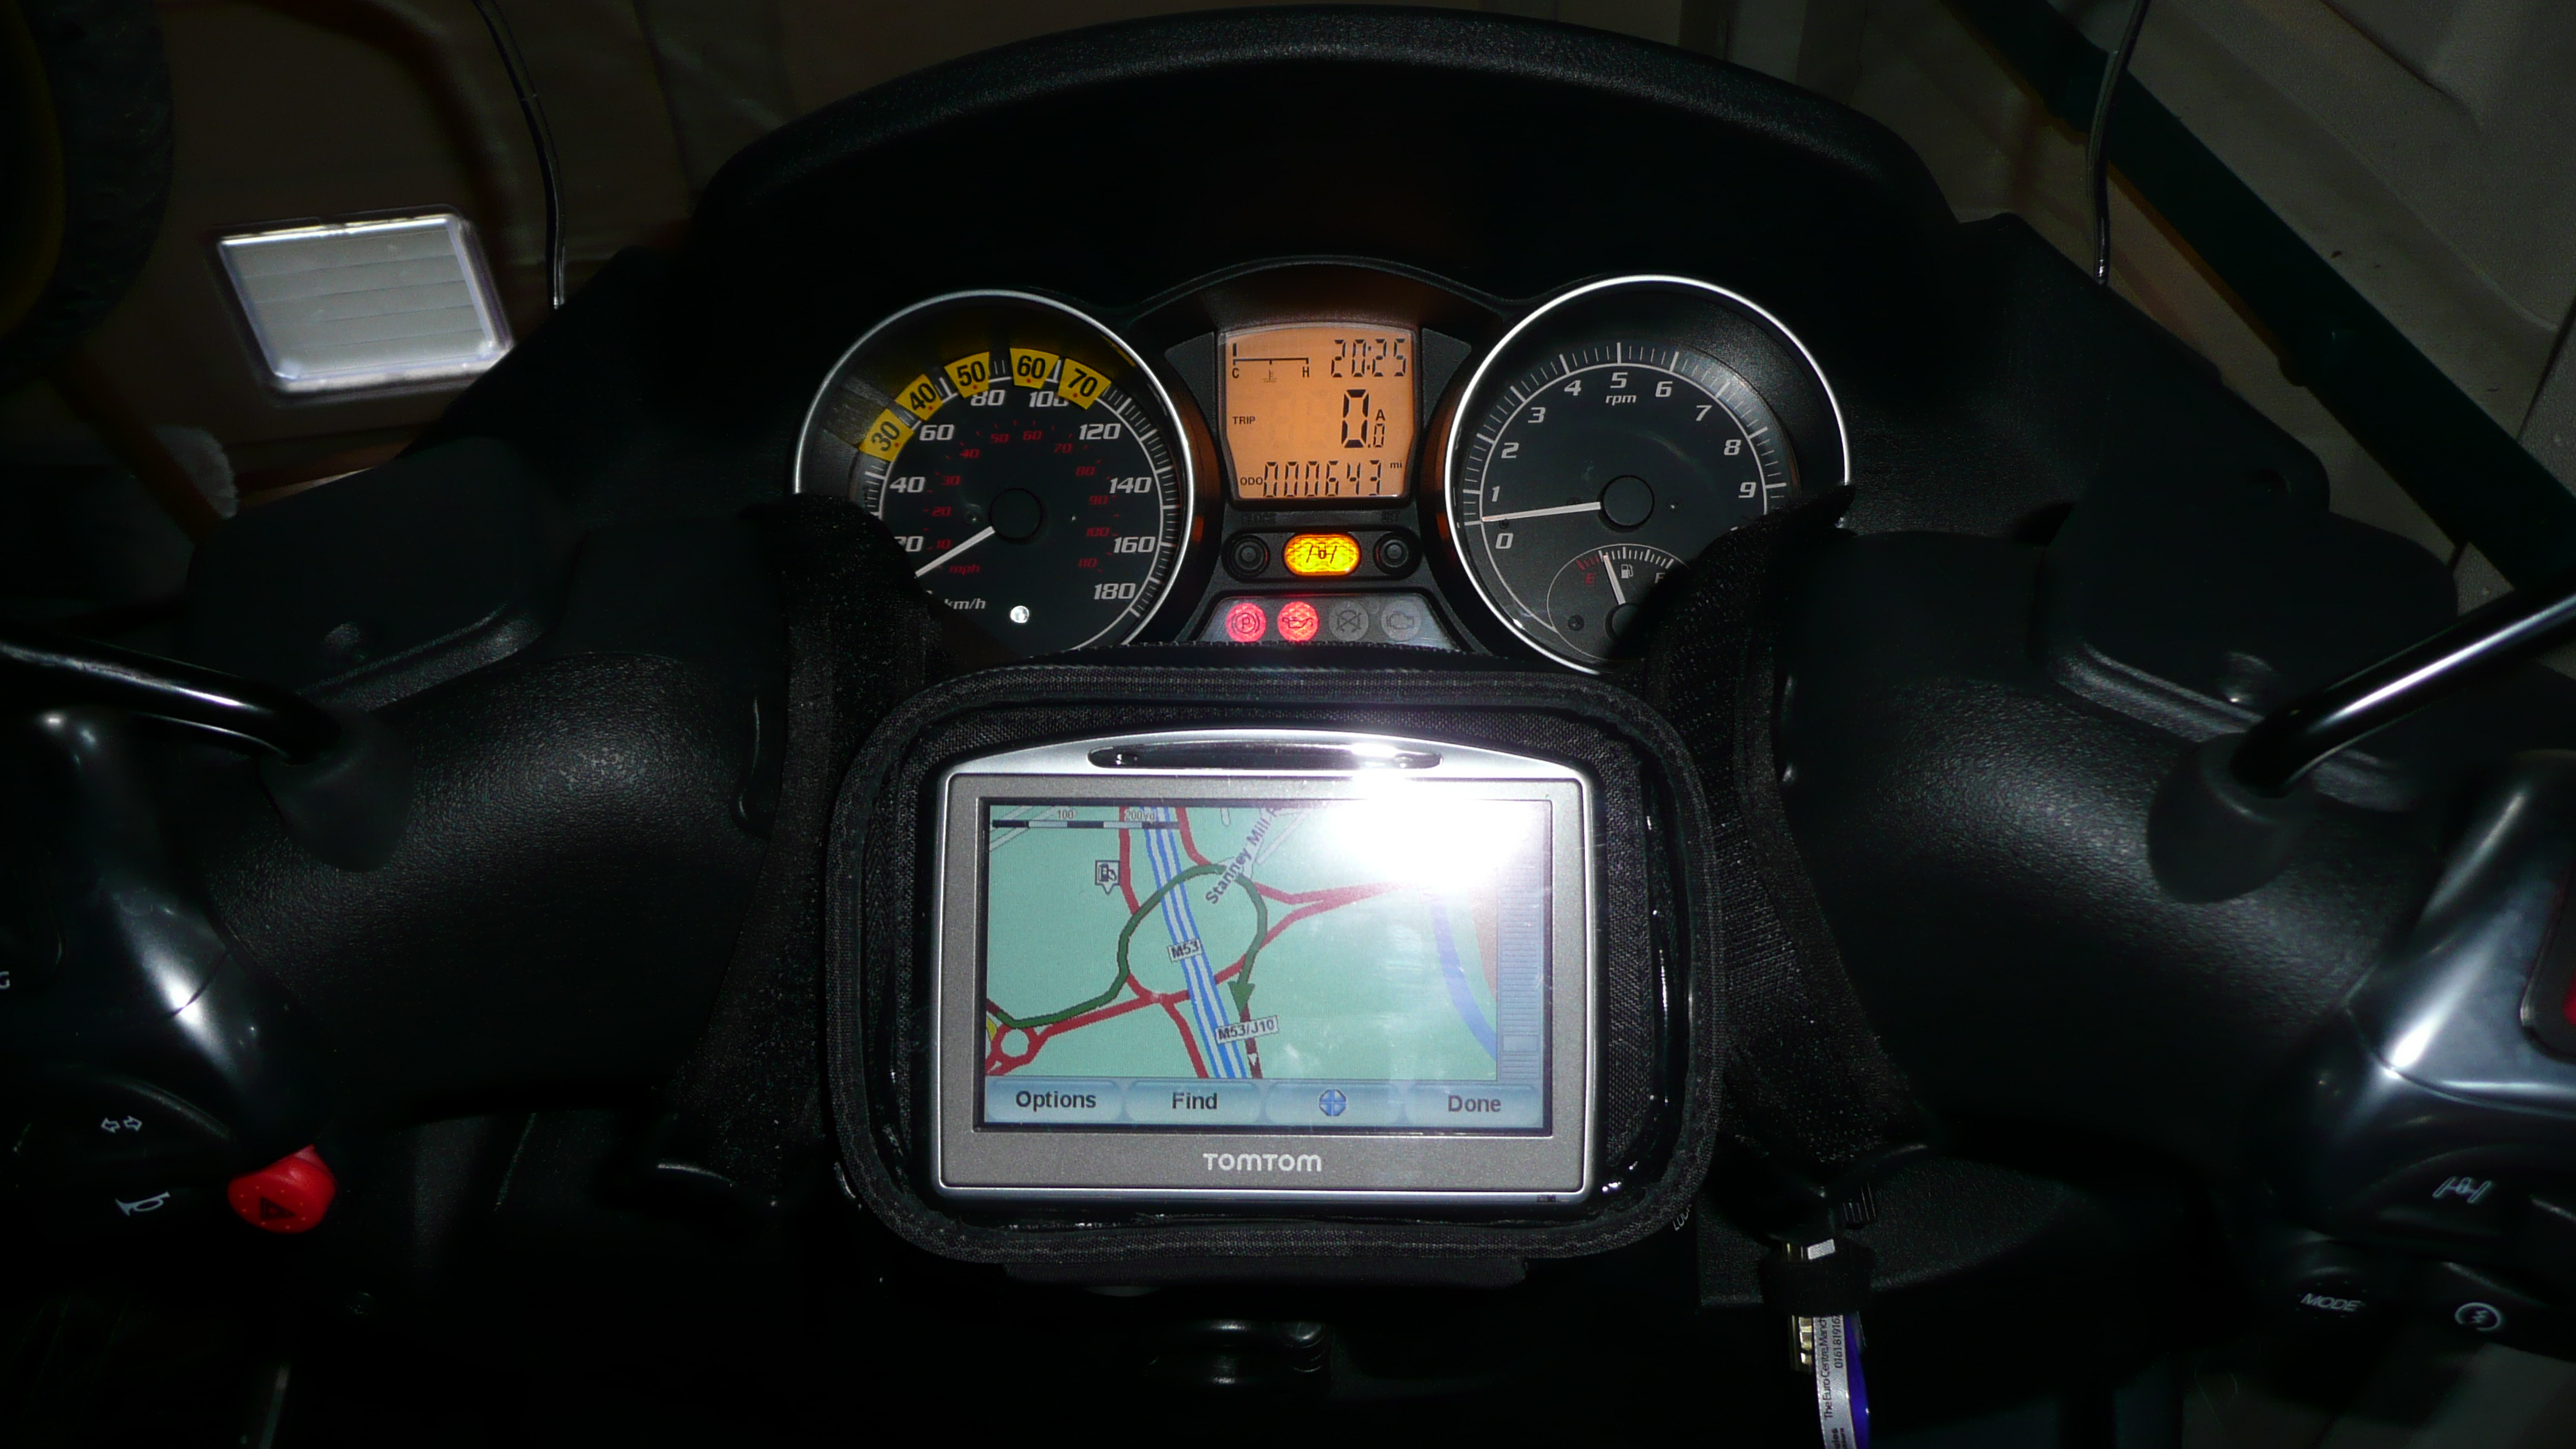 TomTom 520 on a Piaggio MP3